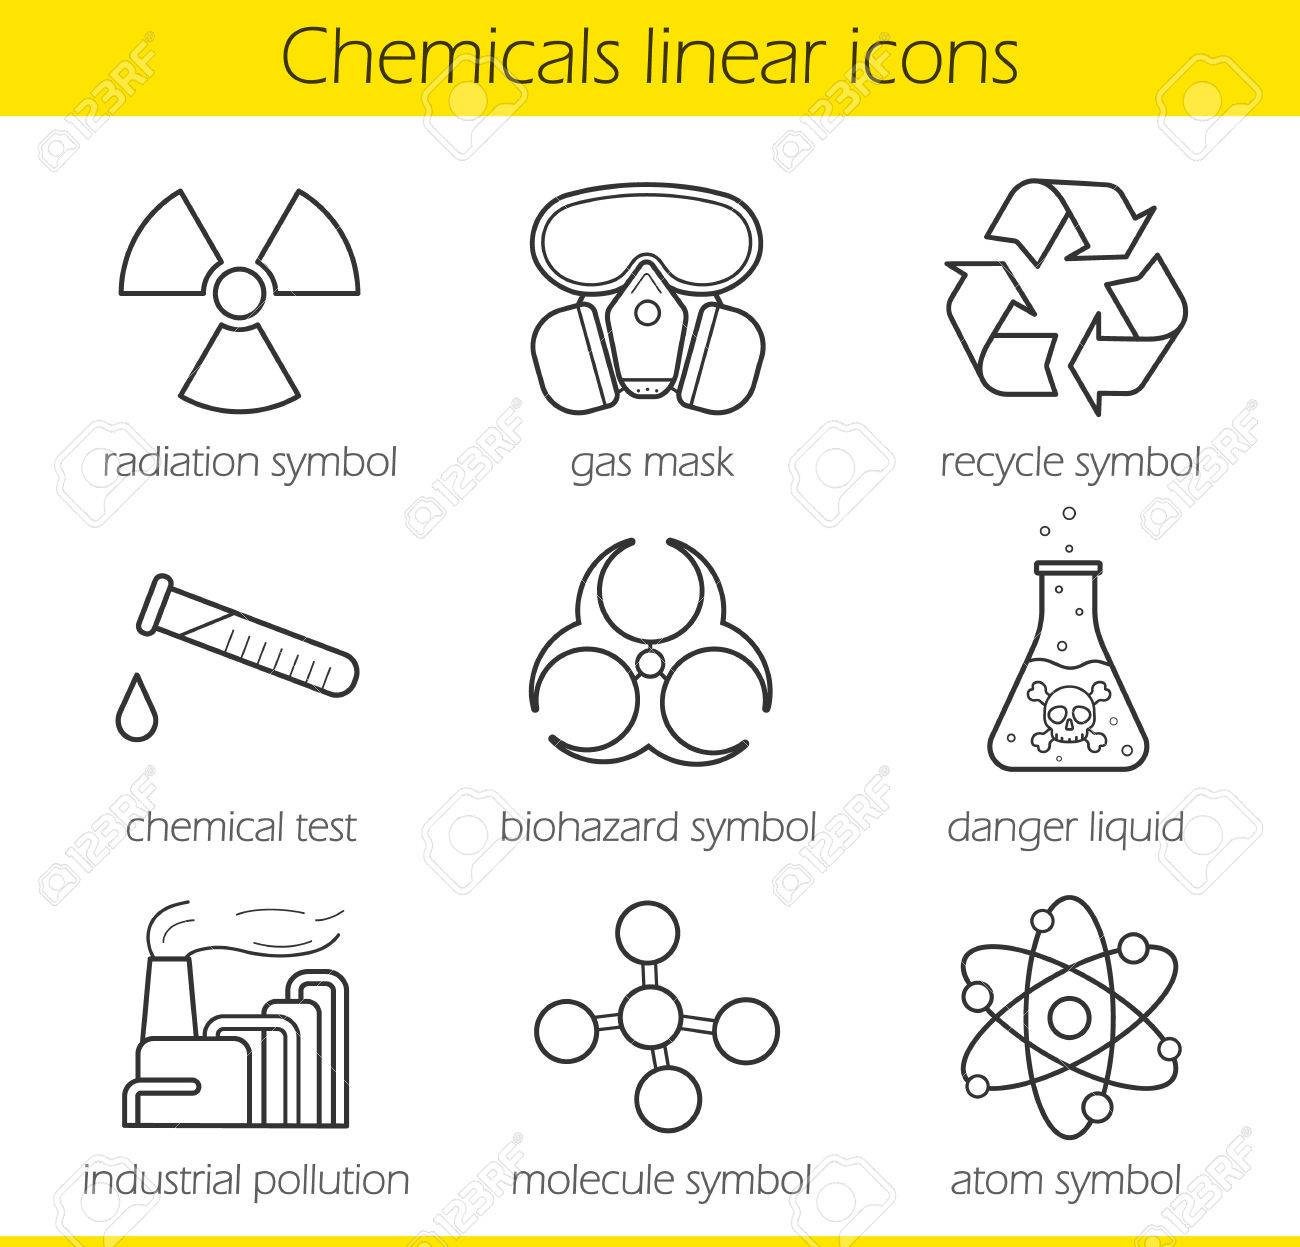 Laboratory equipment chemical industy gas mask recycle symbol laboratory equipment chemical industy gas mask recycle symbol chemical test tube buycottarizona